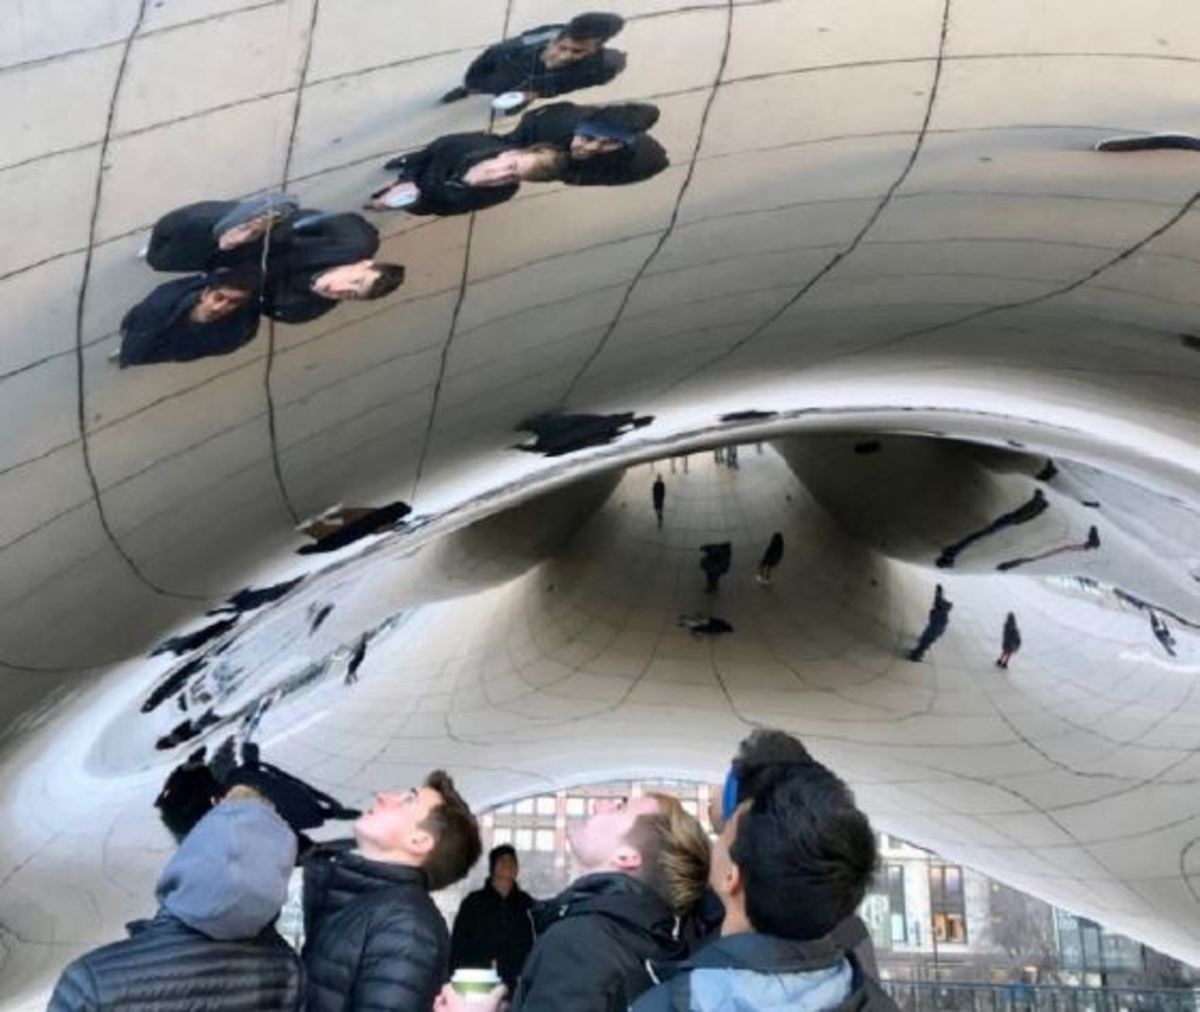 "BEAN THERE, DONE THAT Boys on the trip marvel at the enormity of the famed Millenium Park Bean before attending the conference later that day. For many of the club's five seniors, it was their final opportunity to do Model UN as a high school student. ""Chicago was a nice break from school, and I was able to get a unique educational experience. I formed connections with lots of people and also got to check out the city,"" said Nikhil Sekar, 12."